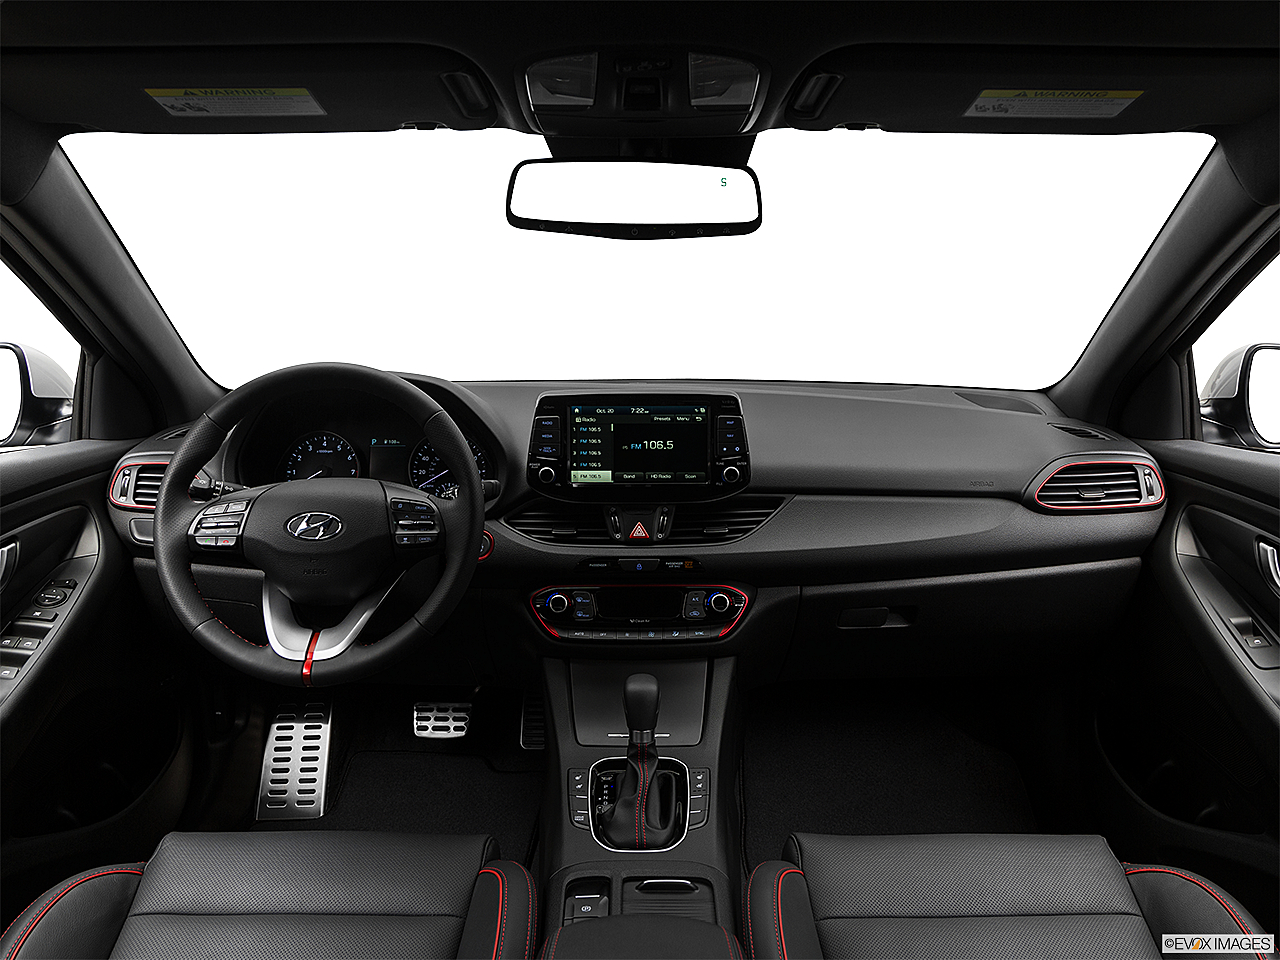 2018 Hyundai Elantra GT Sport, centered wide dash shot